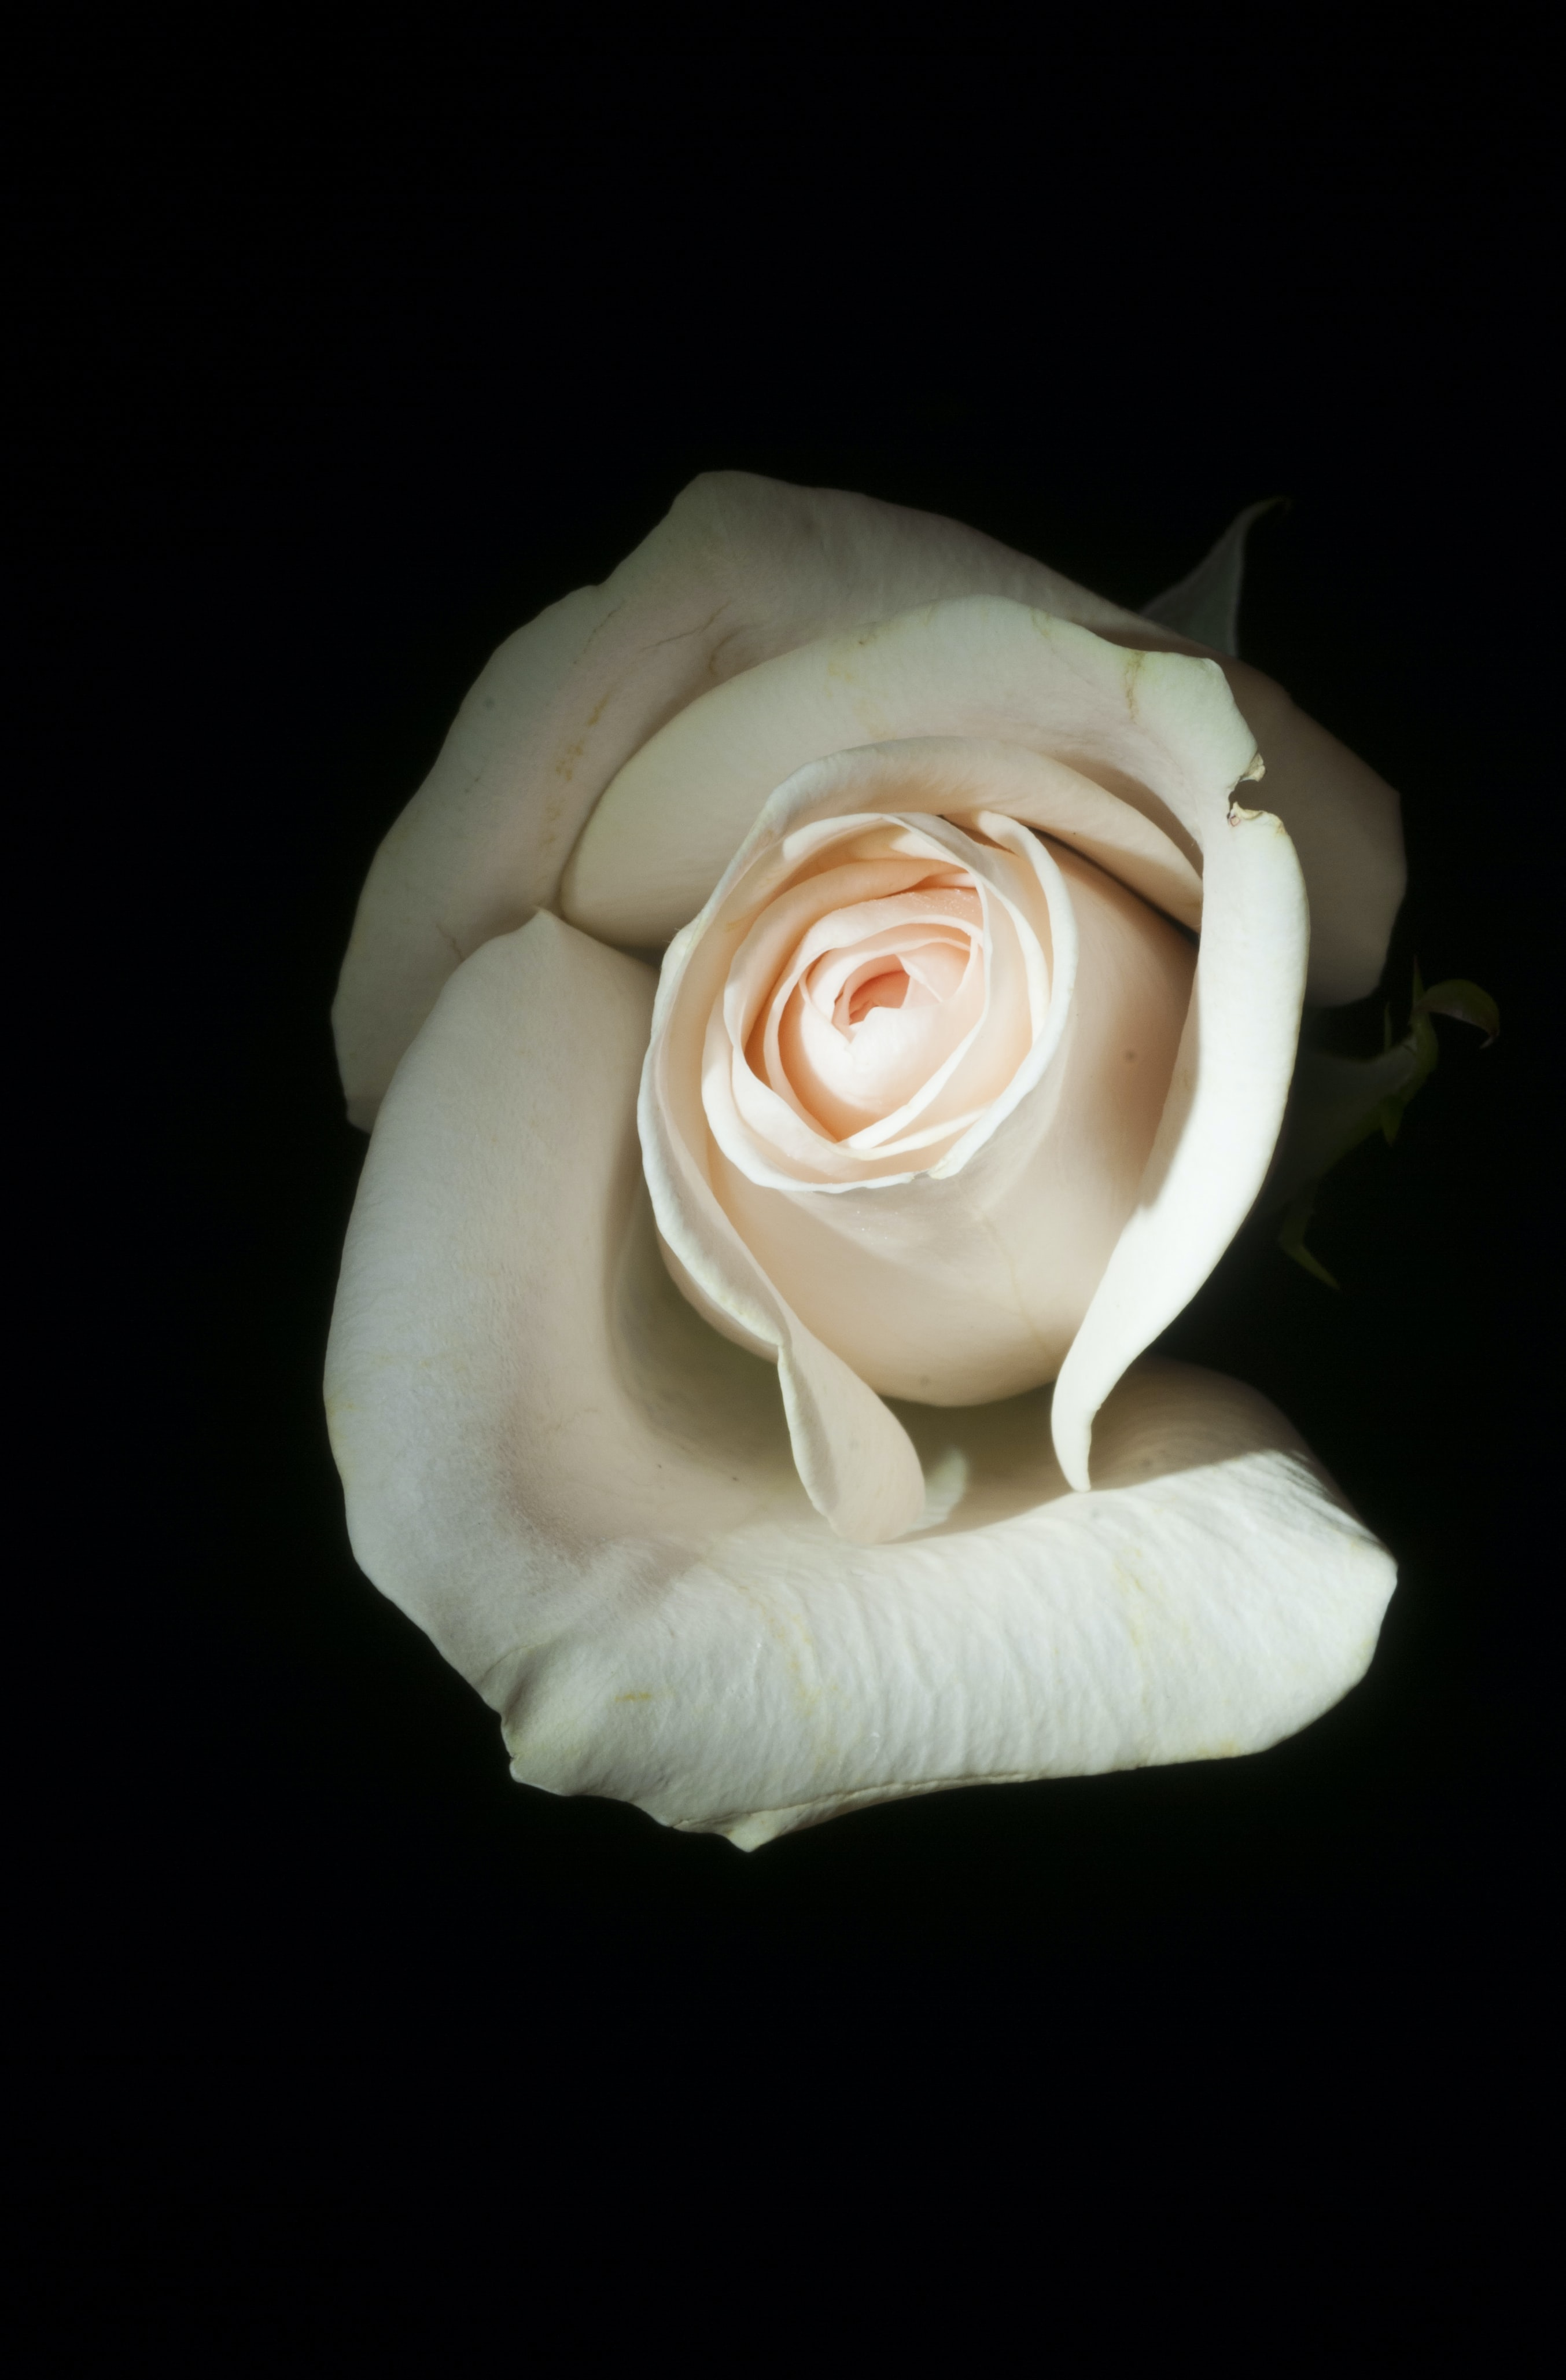 A delicate white rose against a black background